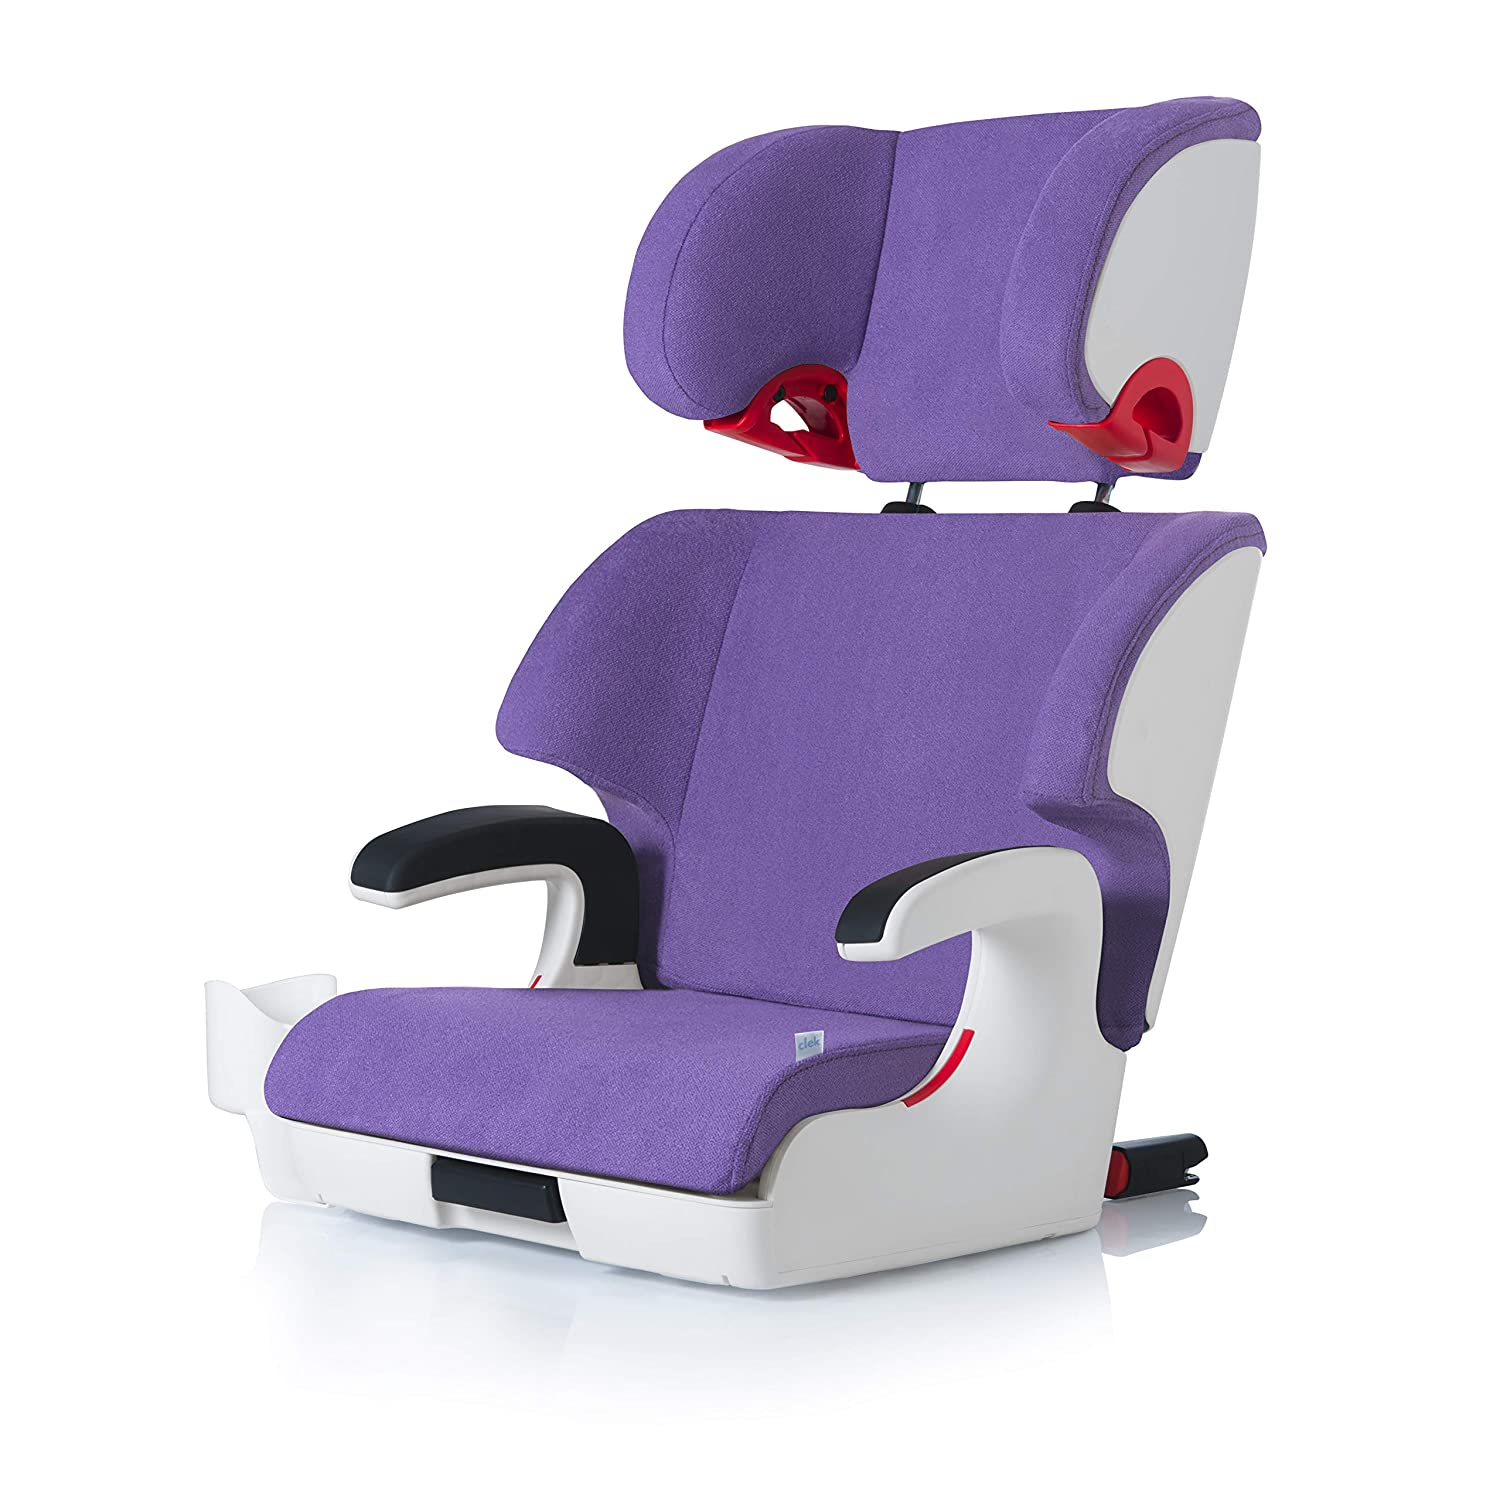 Clek Oobr High Back Booster Car Seat